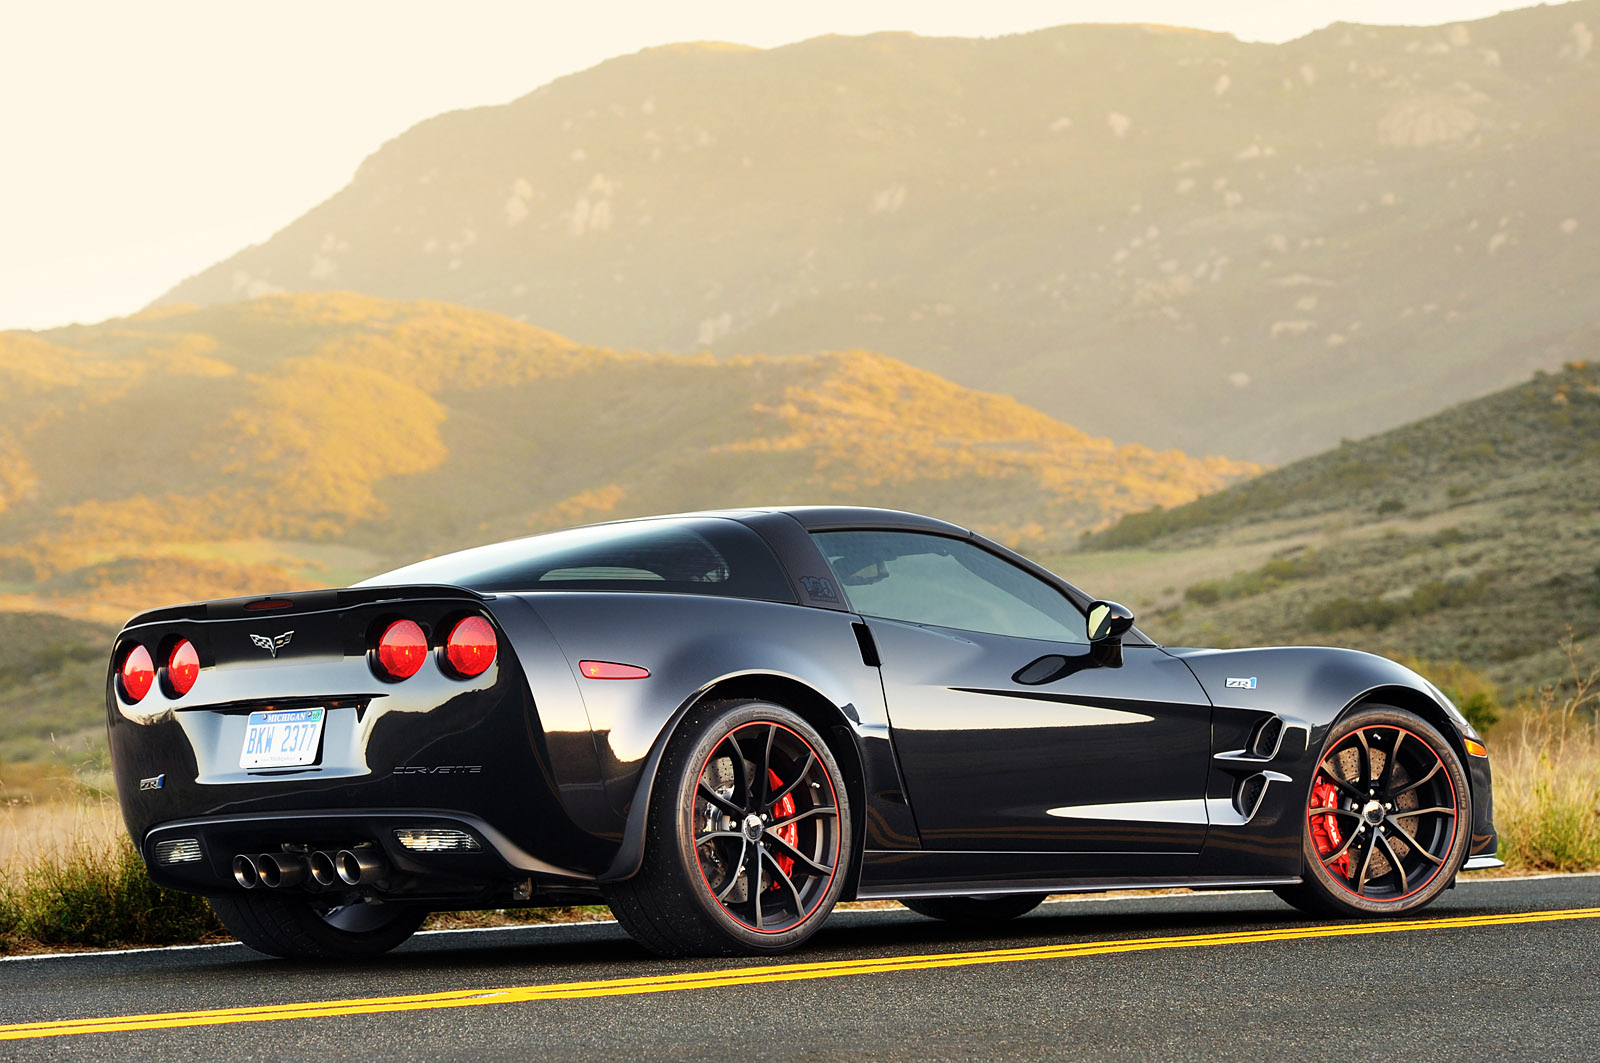 2012 chevrolet corvette zr1 w video autoblog. Black Bedroom Furniture Sets. Home Design Ideas